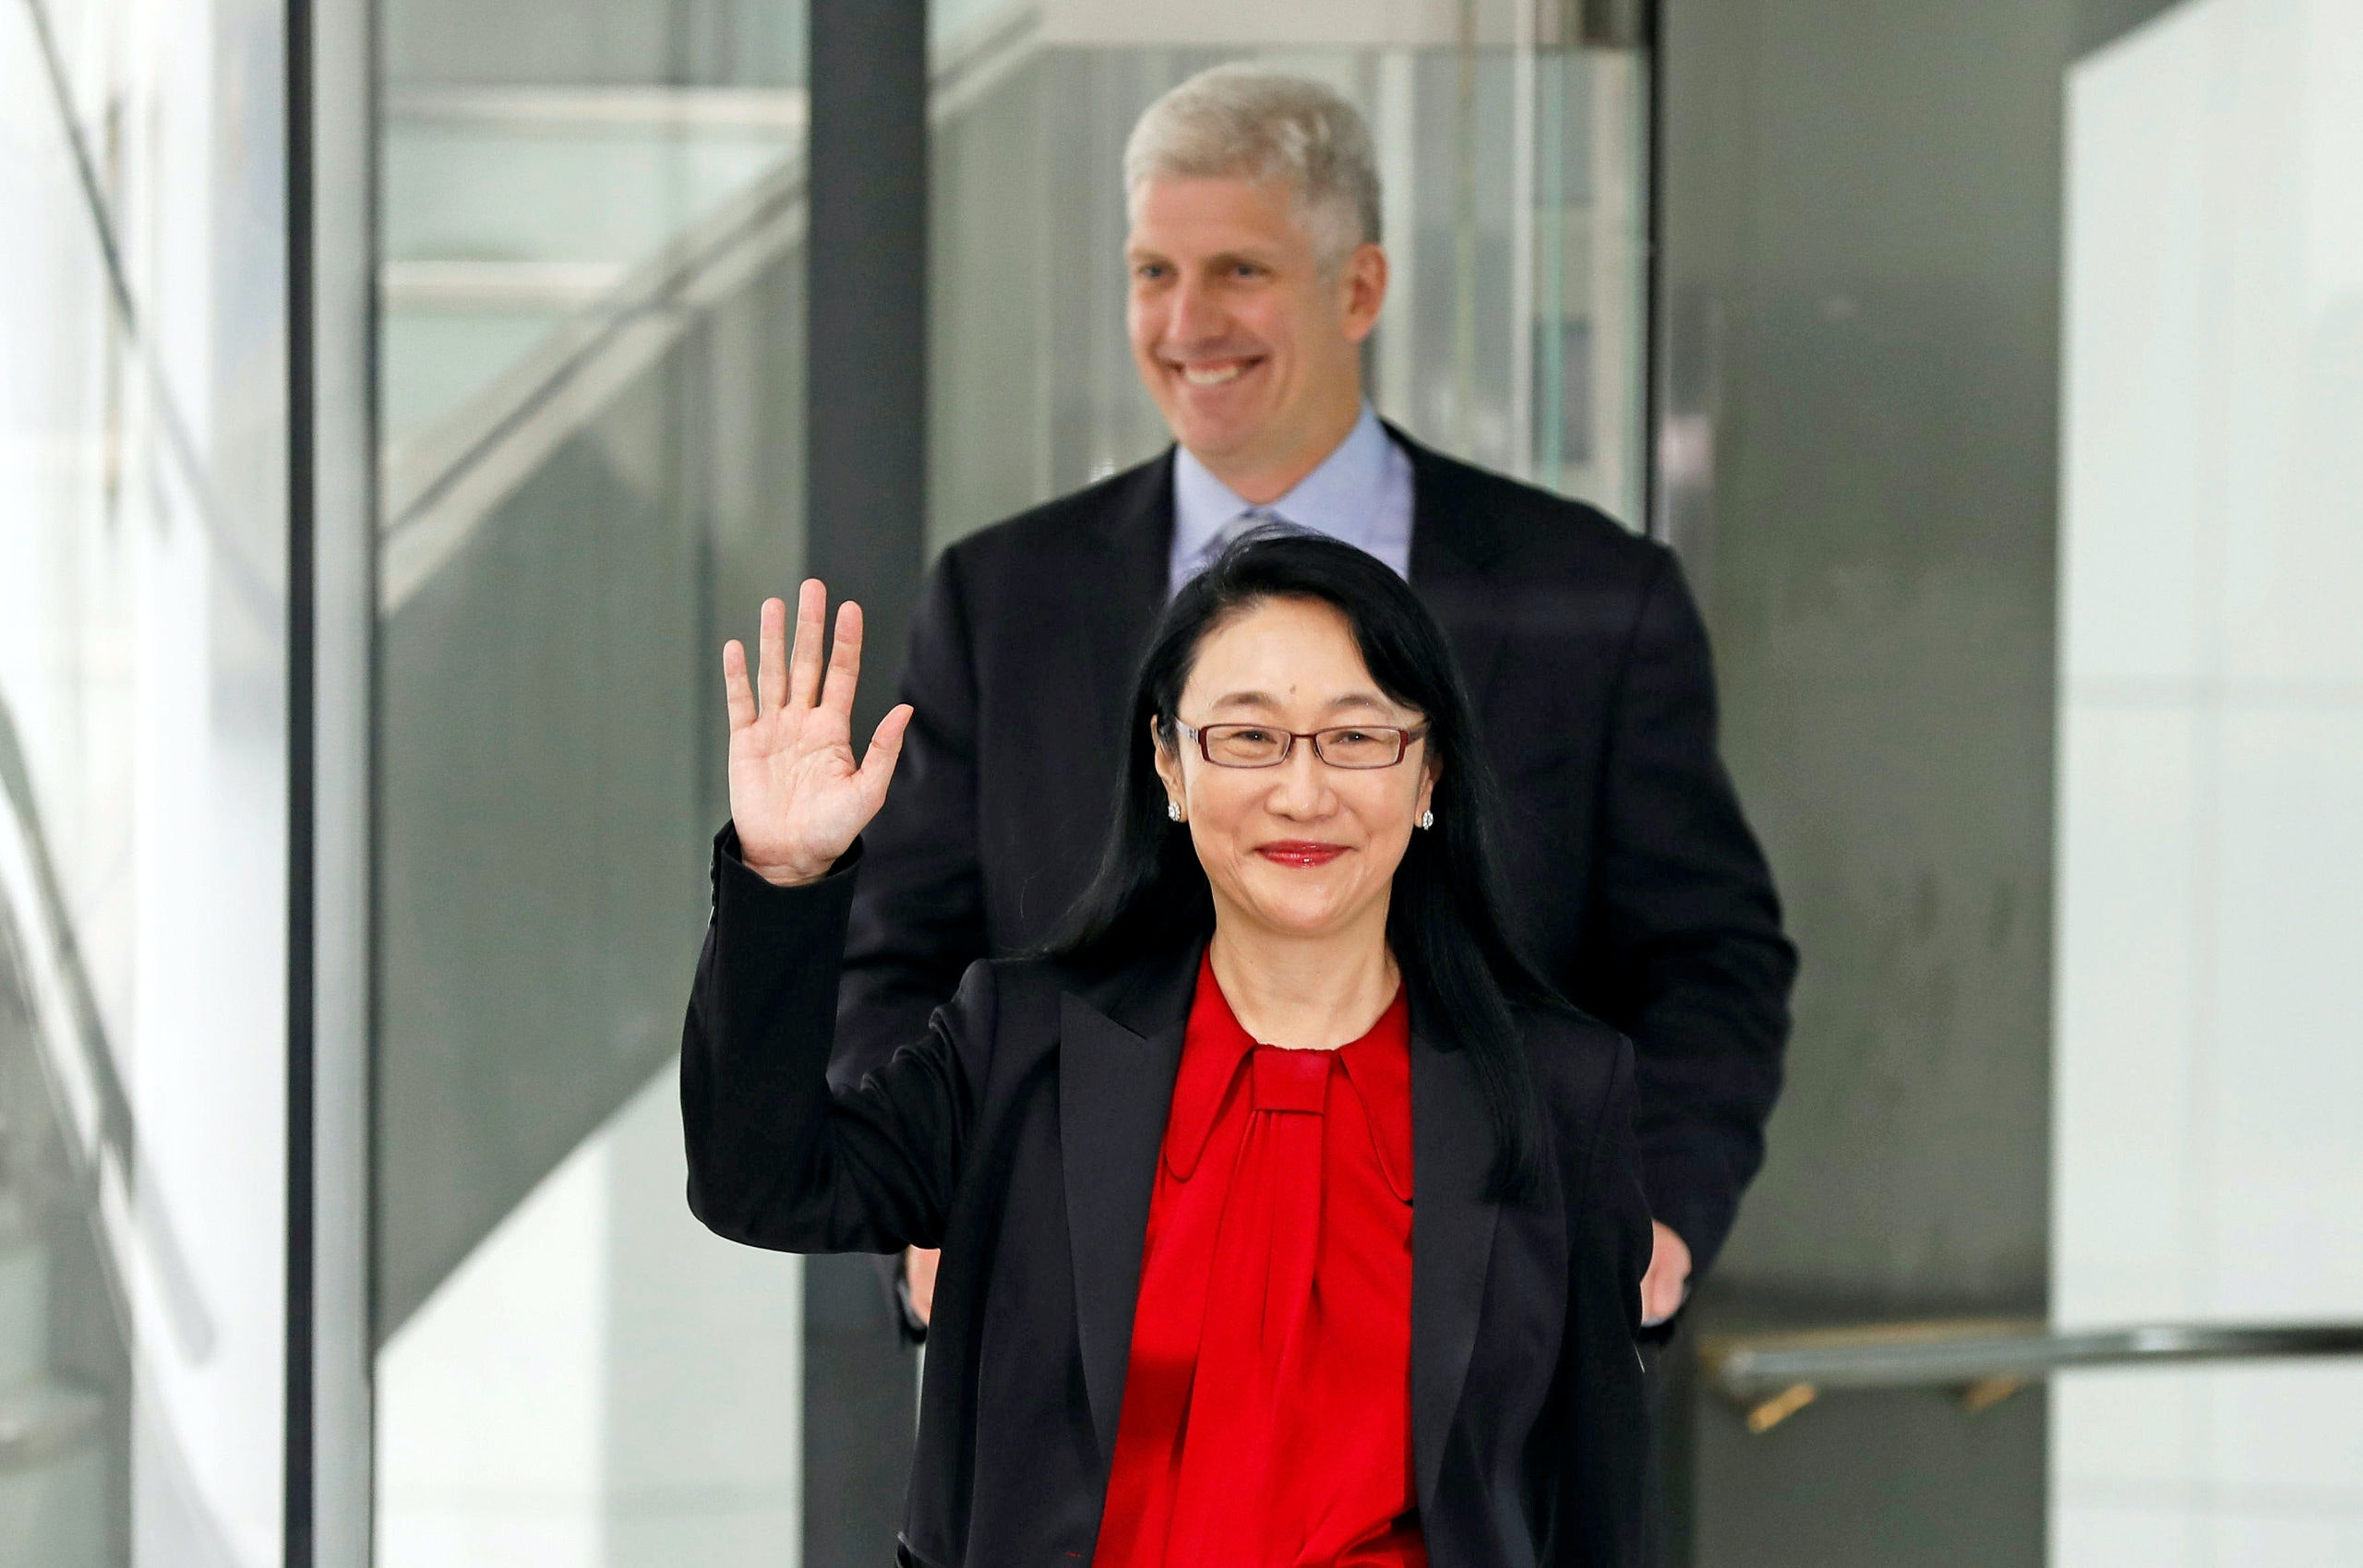 Google hardware executive Rick Osterloh and HTC CEO Cher Wang (front) attend a news conference to announce Google to acquire HTC's Pixel smartphone division, in Taipei, Taiwan September 21, 2017. REUTERS/Tyrone Siu - RC1D74B8A4C0